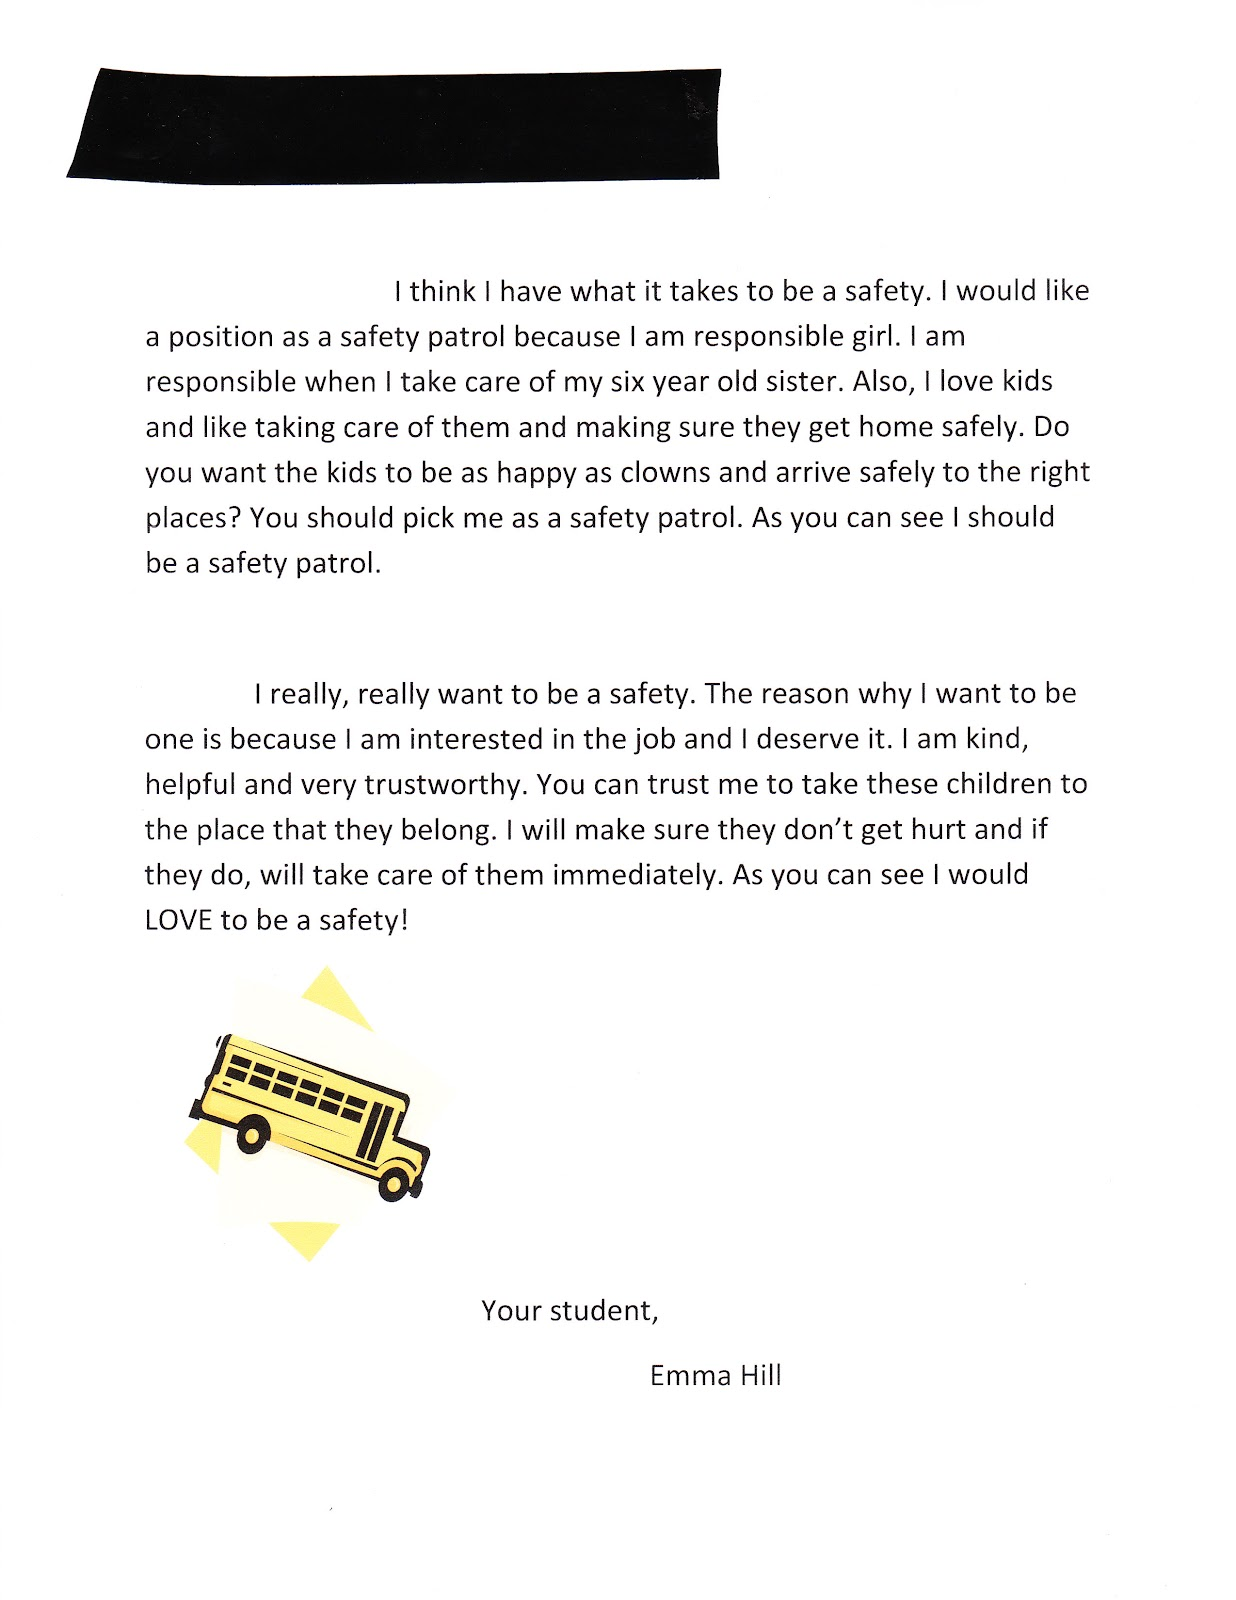 Sample essay for elementary students school safety essay the letter school safety essay the letter that landed my daughter on the the letter that landed my expocarfo Choice Image